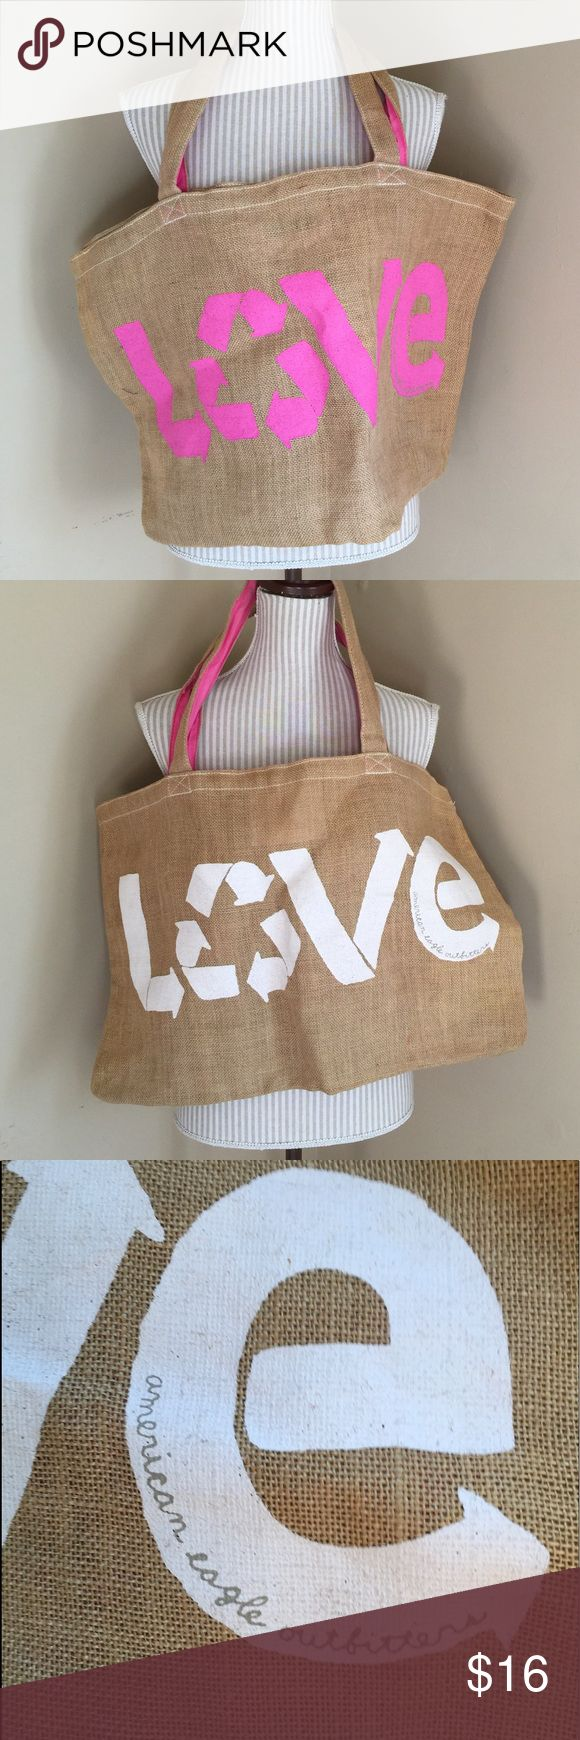 """American Eagle LOVE Pink & White Canvas Tote Bag Great for the beach. Couple spots that are not noticeable at all. Inside & handles are great. About 23.5"""" wide and 15"""" tall. American Eagle Outfitters Bags Totes"""